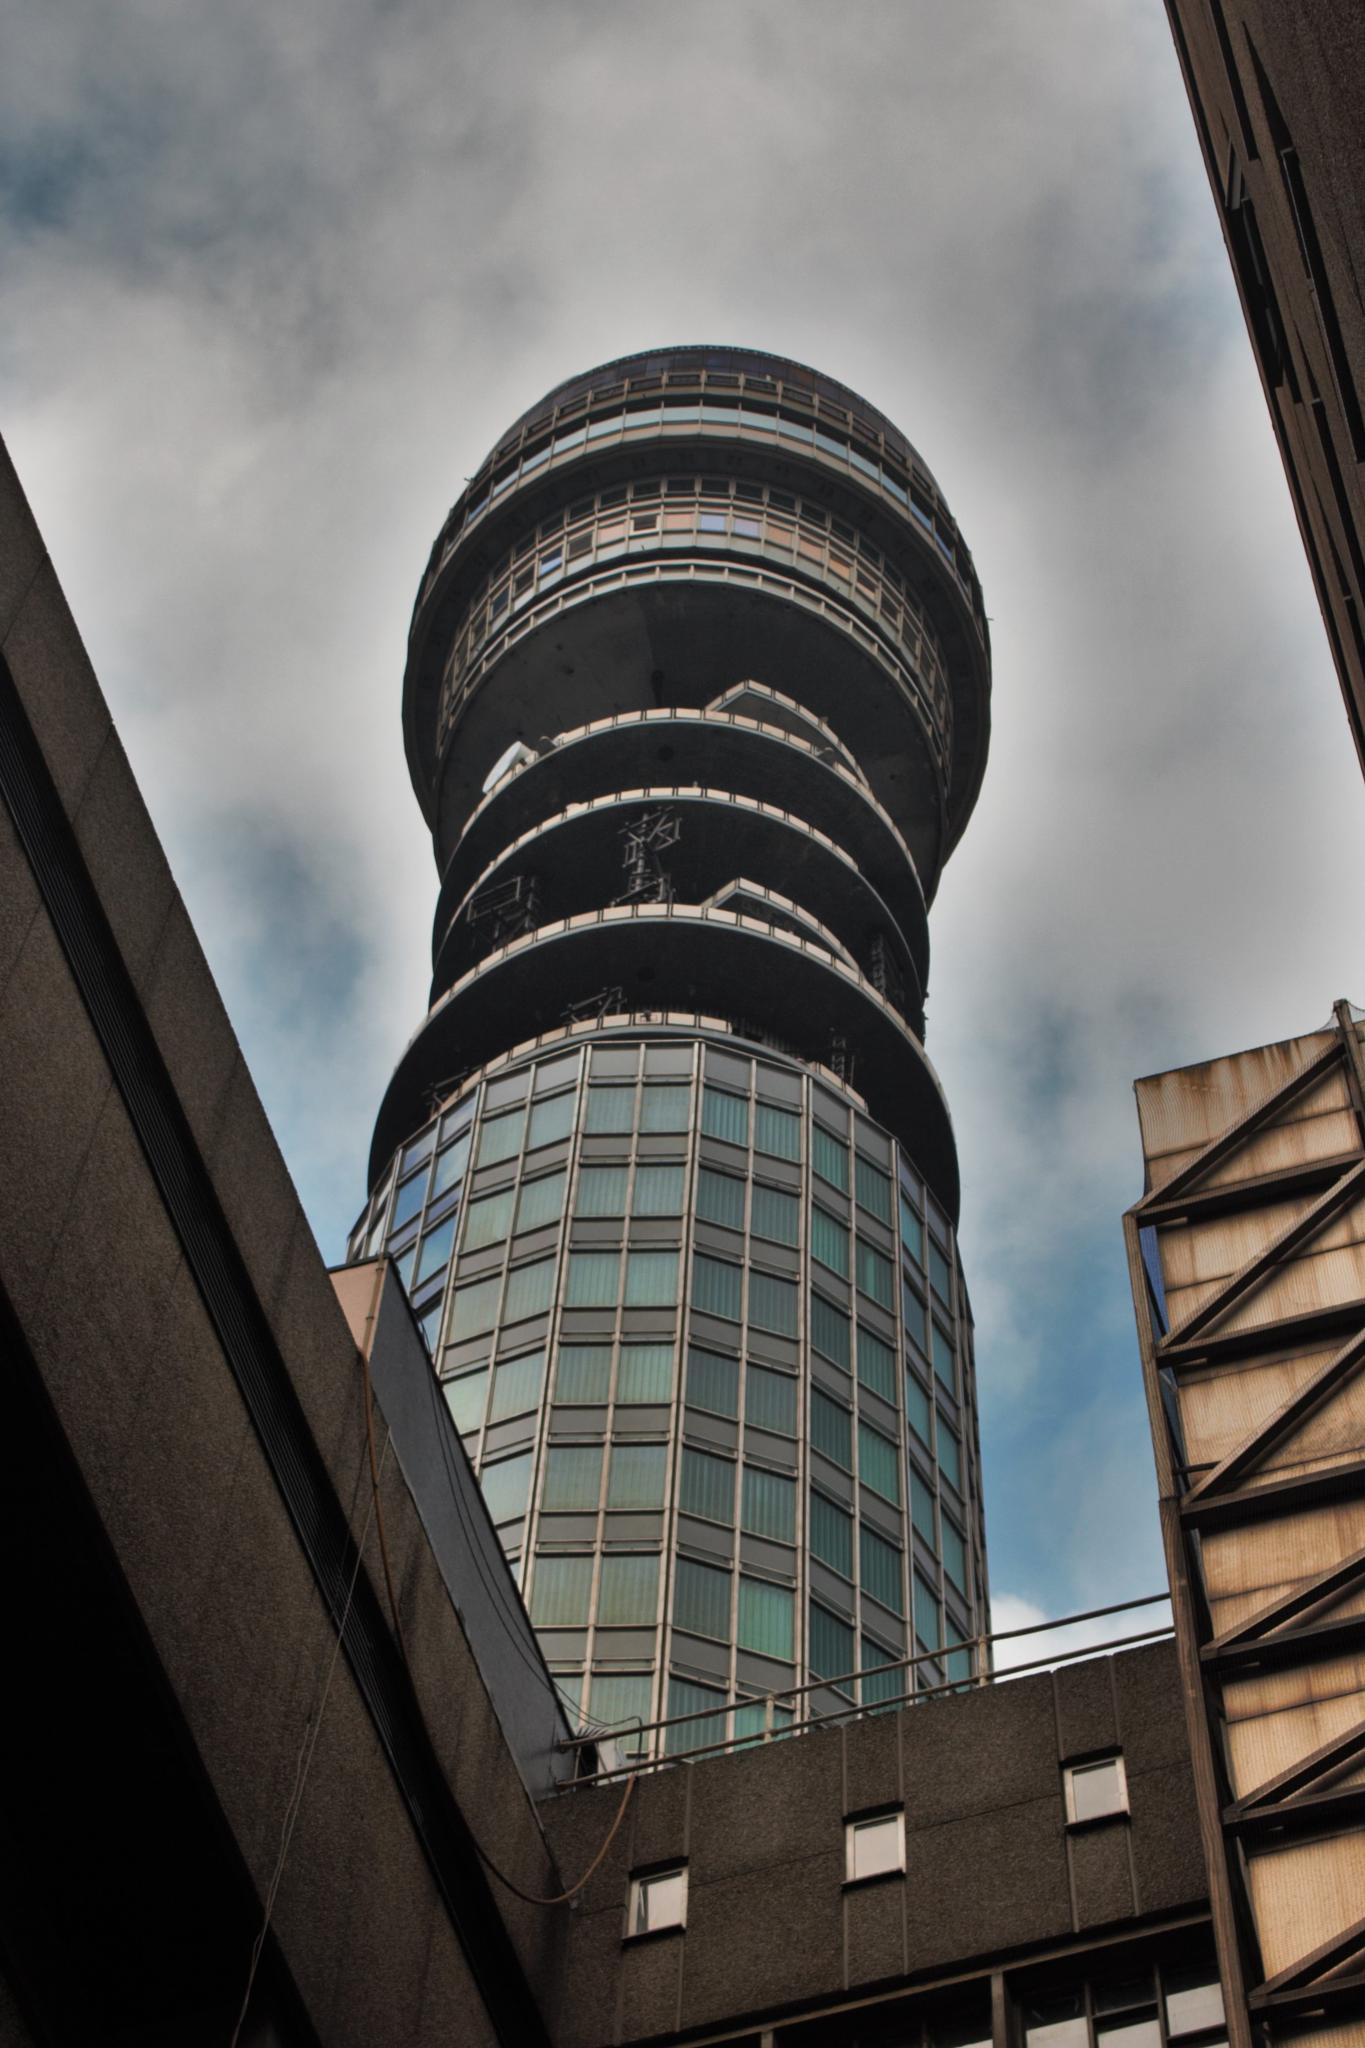 The Post office Tower by colin.savidge